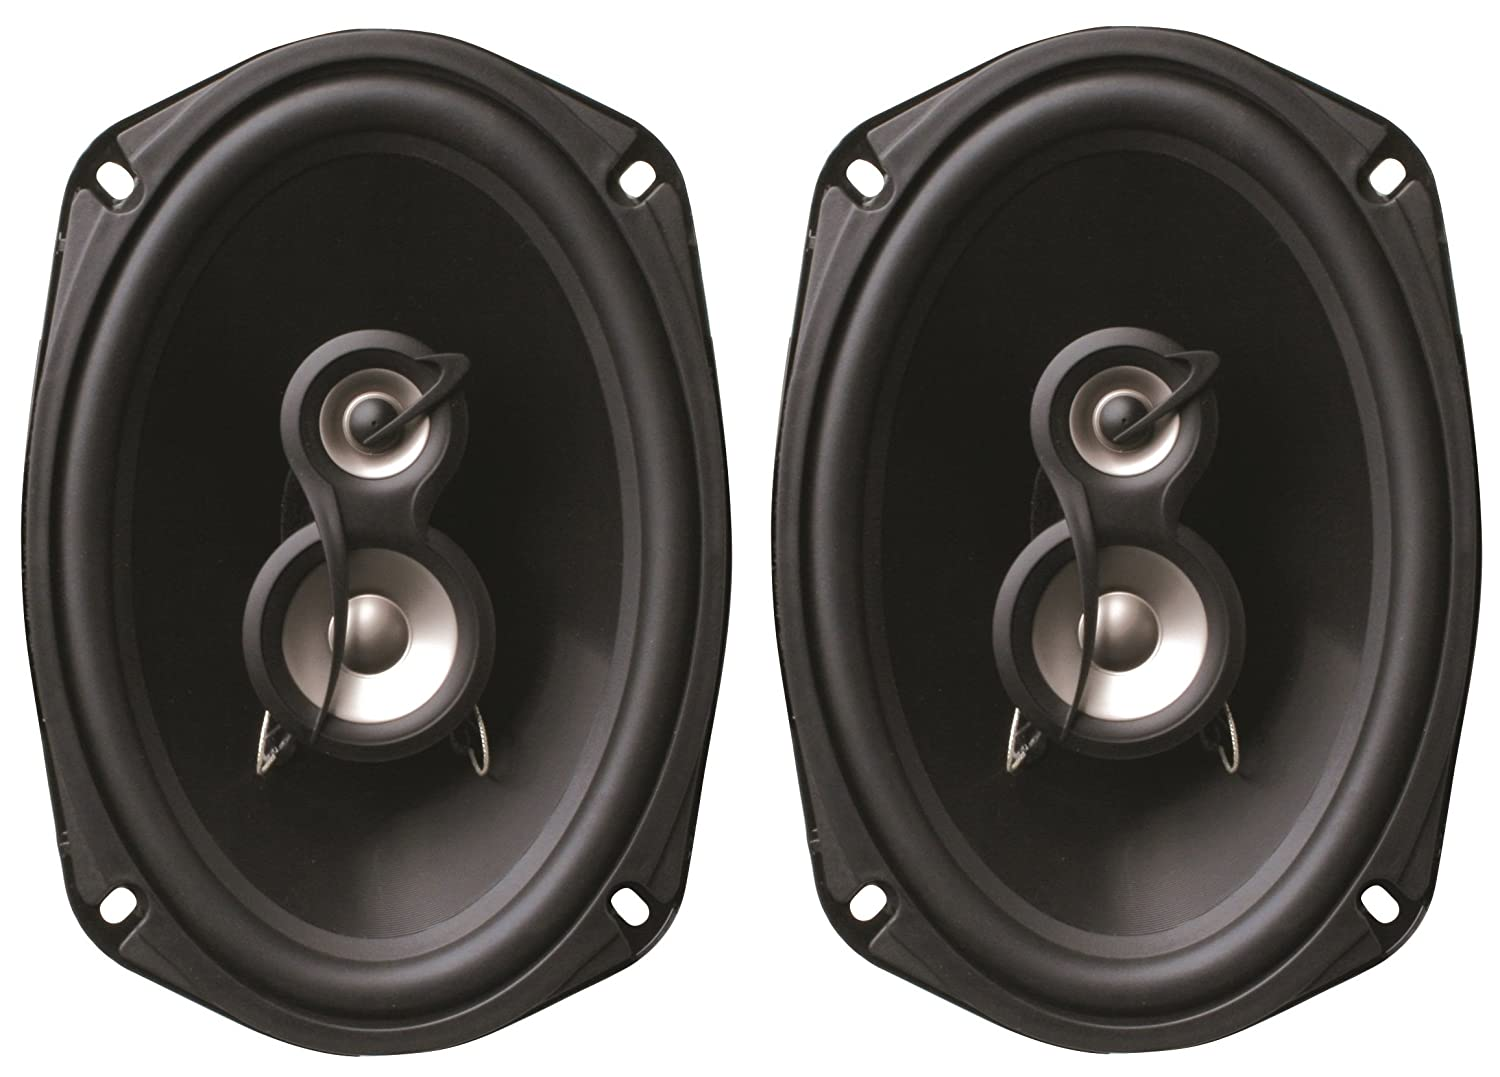 Step By Step Guide On How To Buy The Best 5x7 Speakers